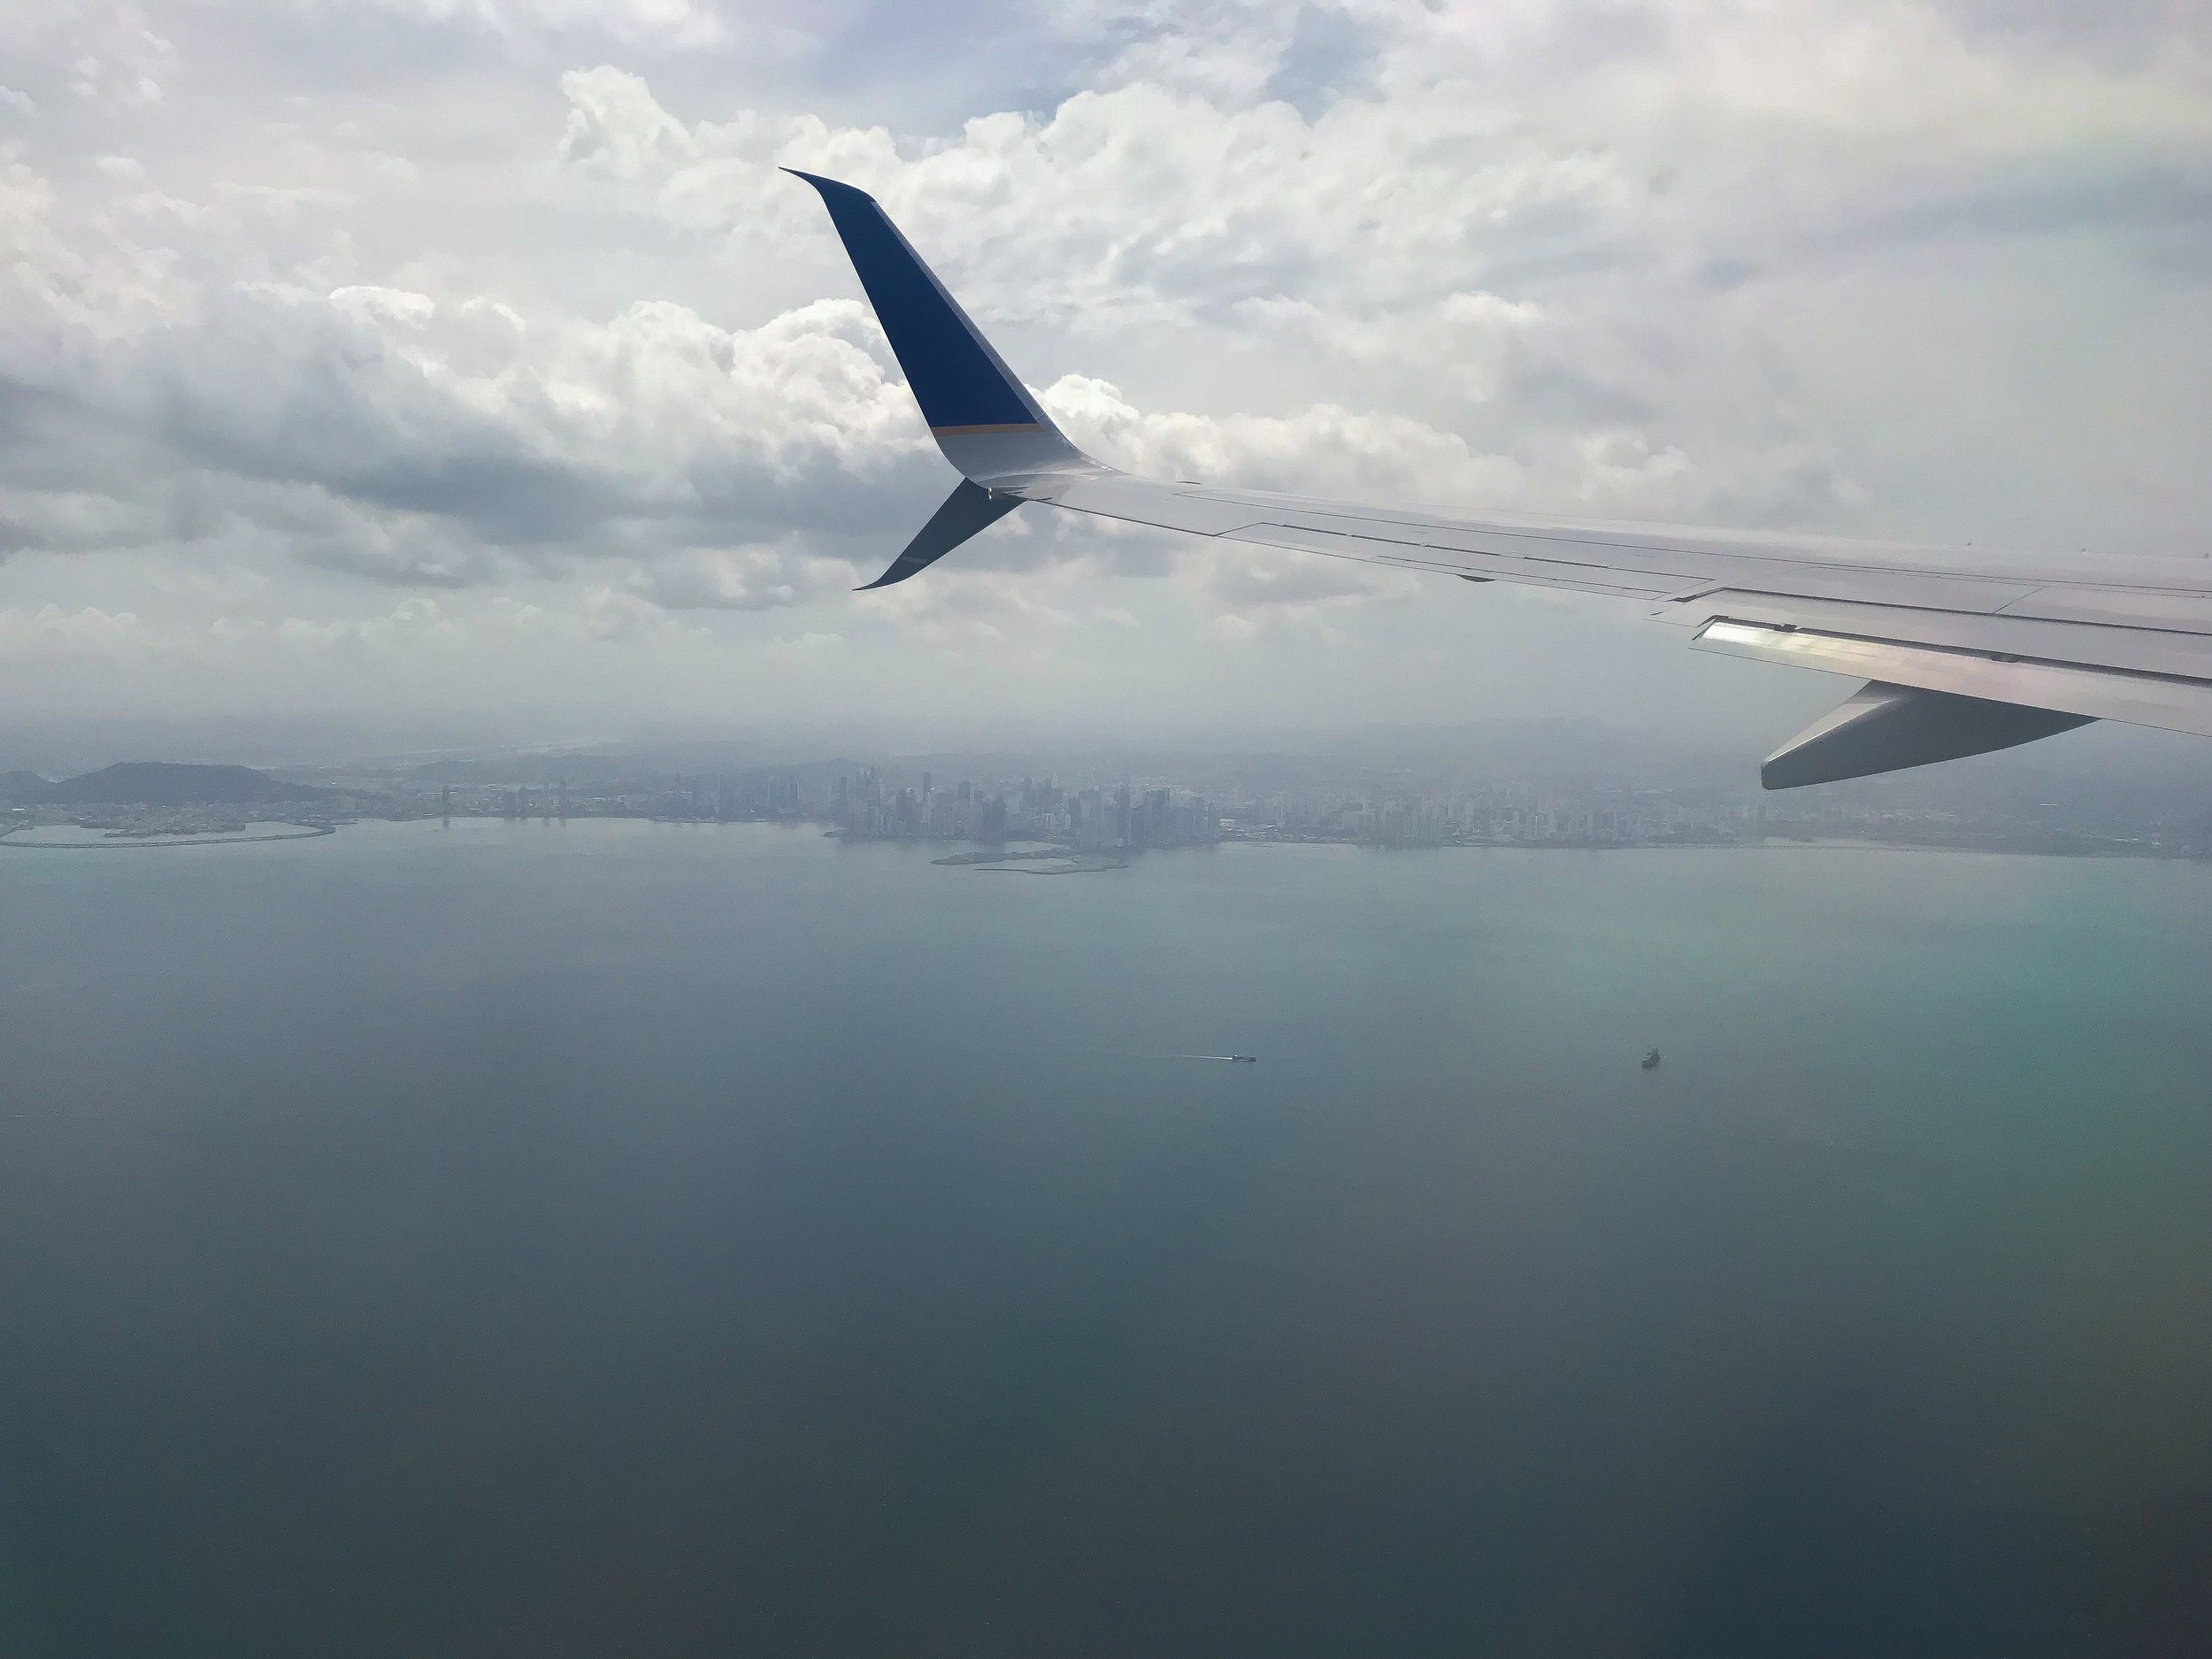 A view of the Panama City skyline from the wing